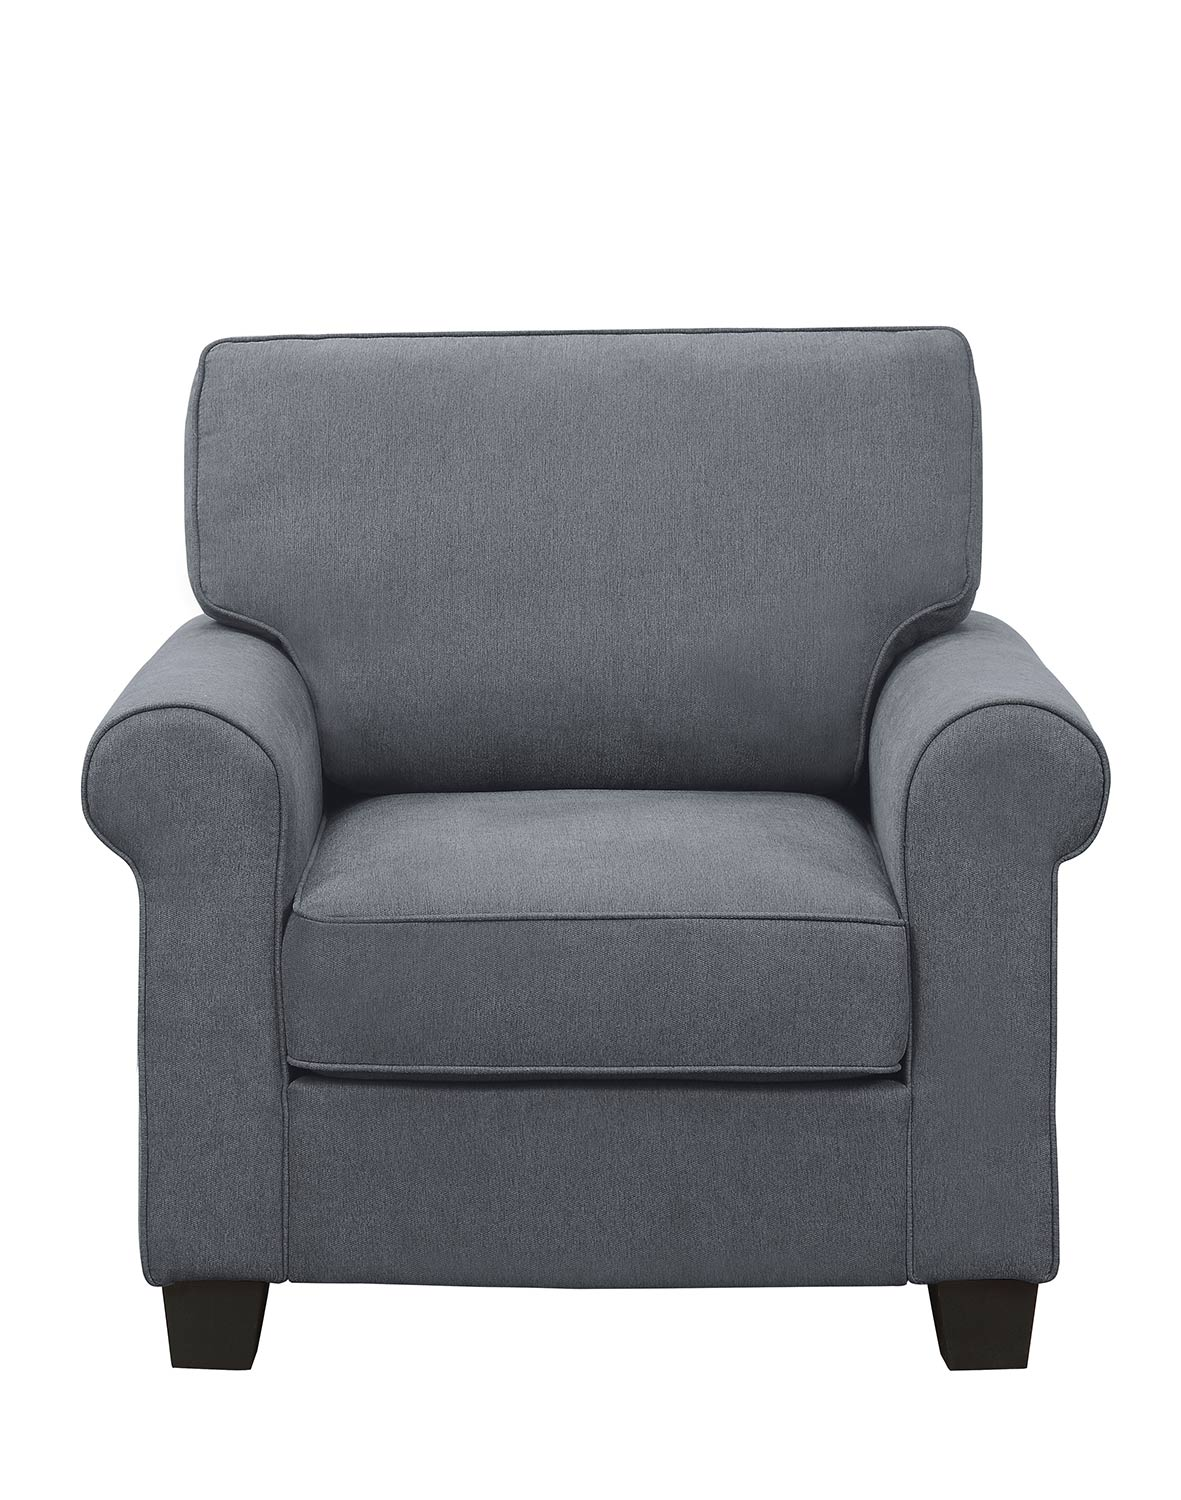 Homelegance Selkirk Chair - Gray